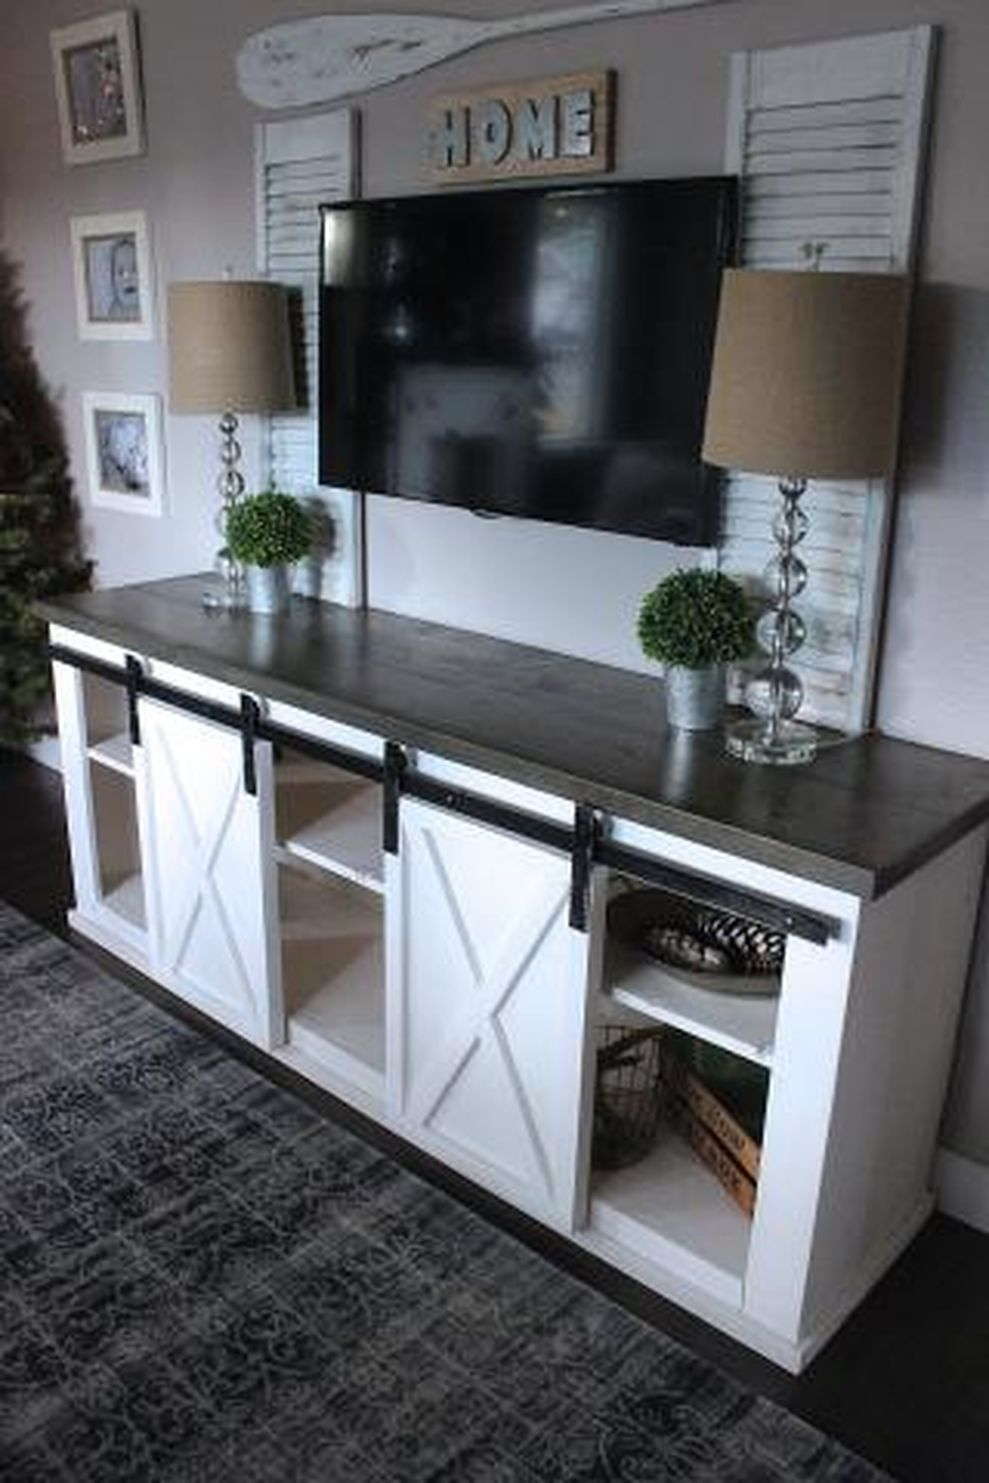 Simple living room design ideas with tv 20 - ROUNDECOR